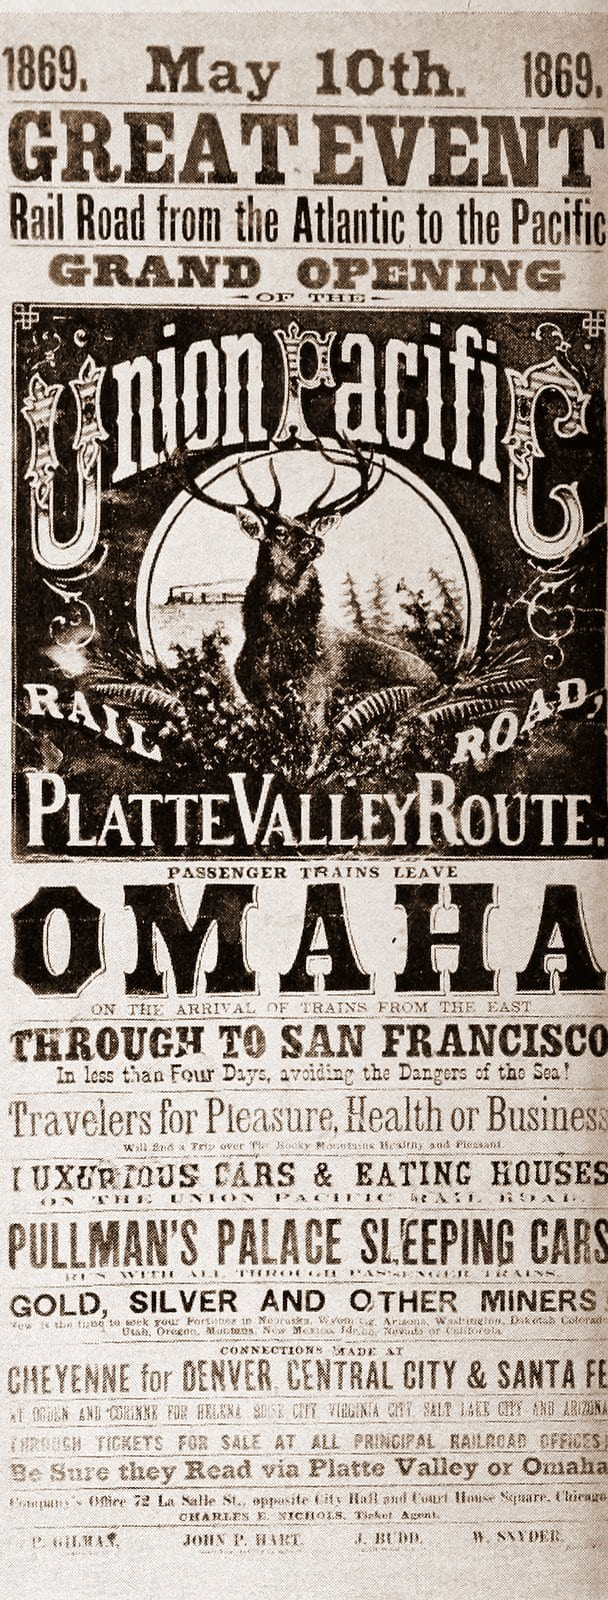 Handbill - Great event: Rail road from the Atlantic to the Pacific - May 10, 1869